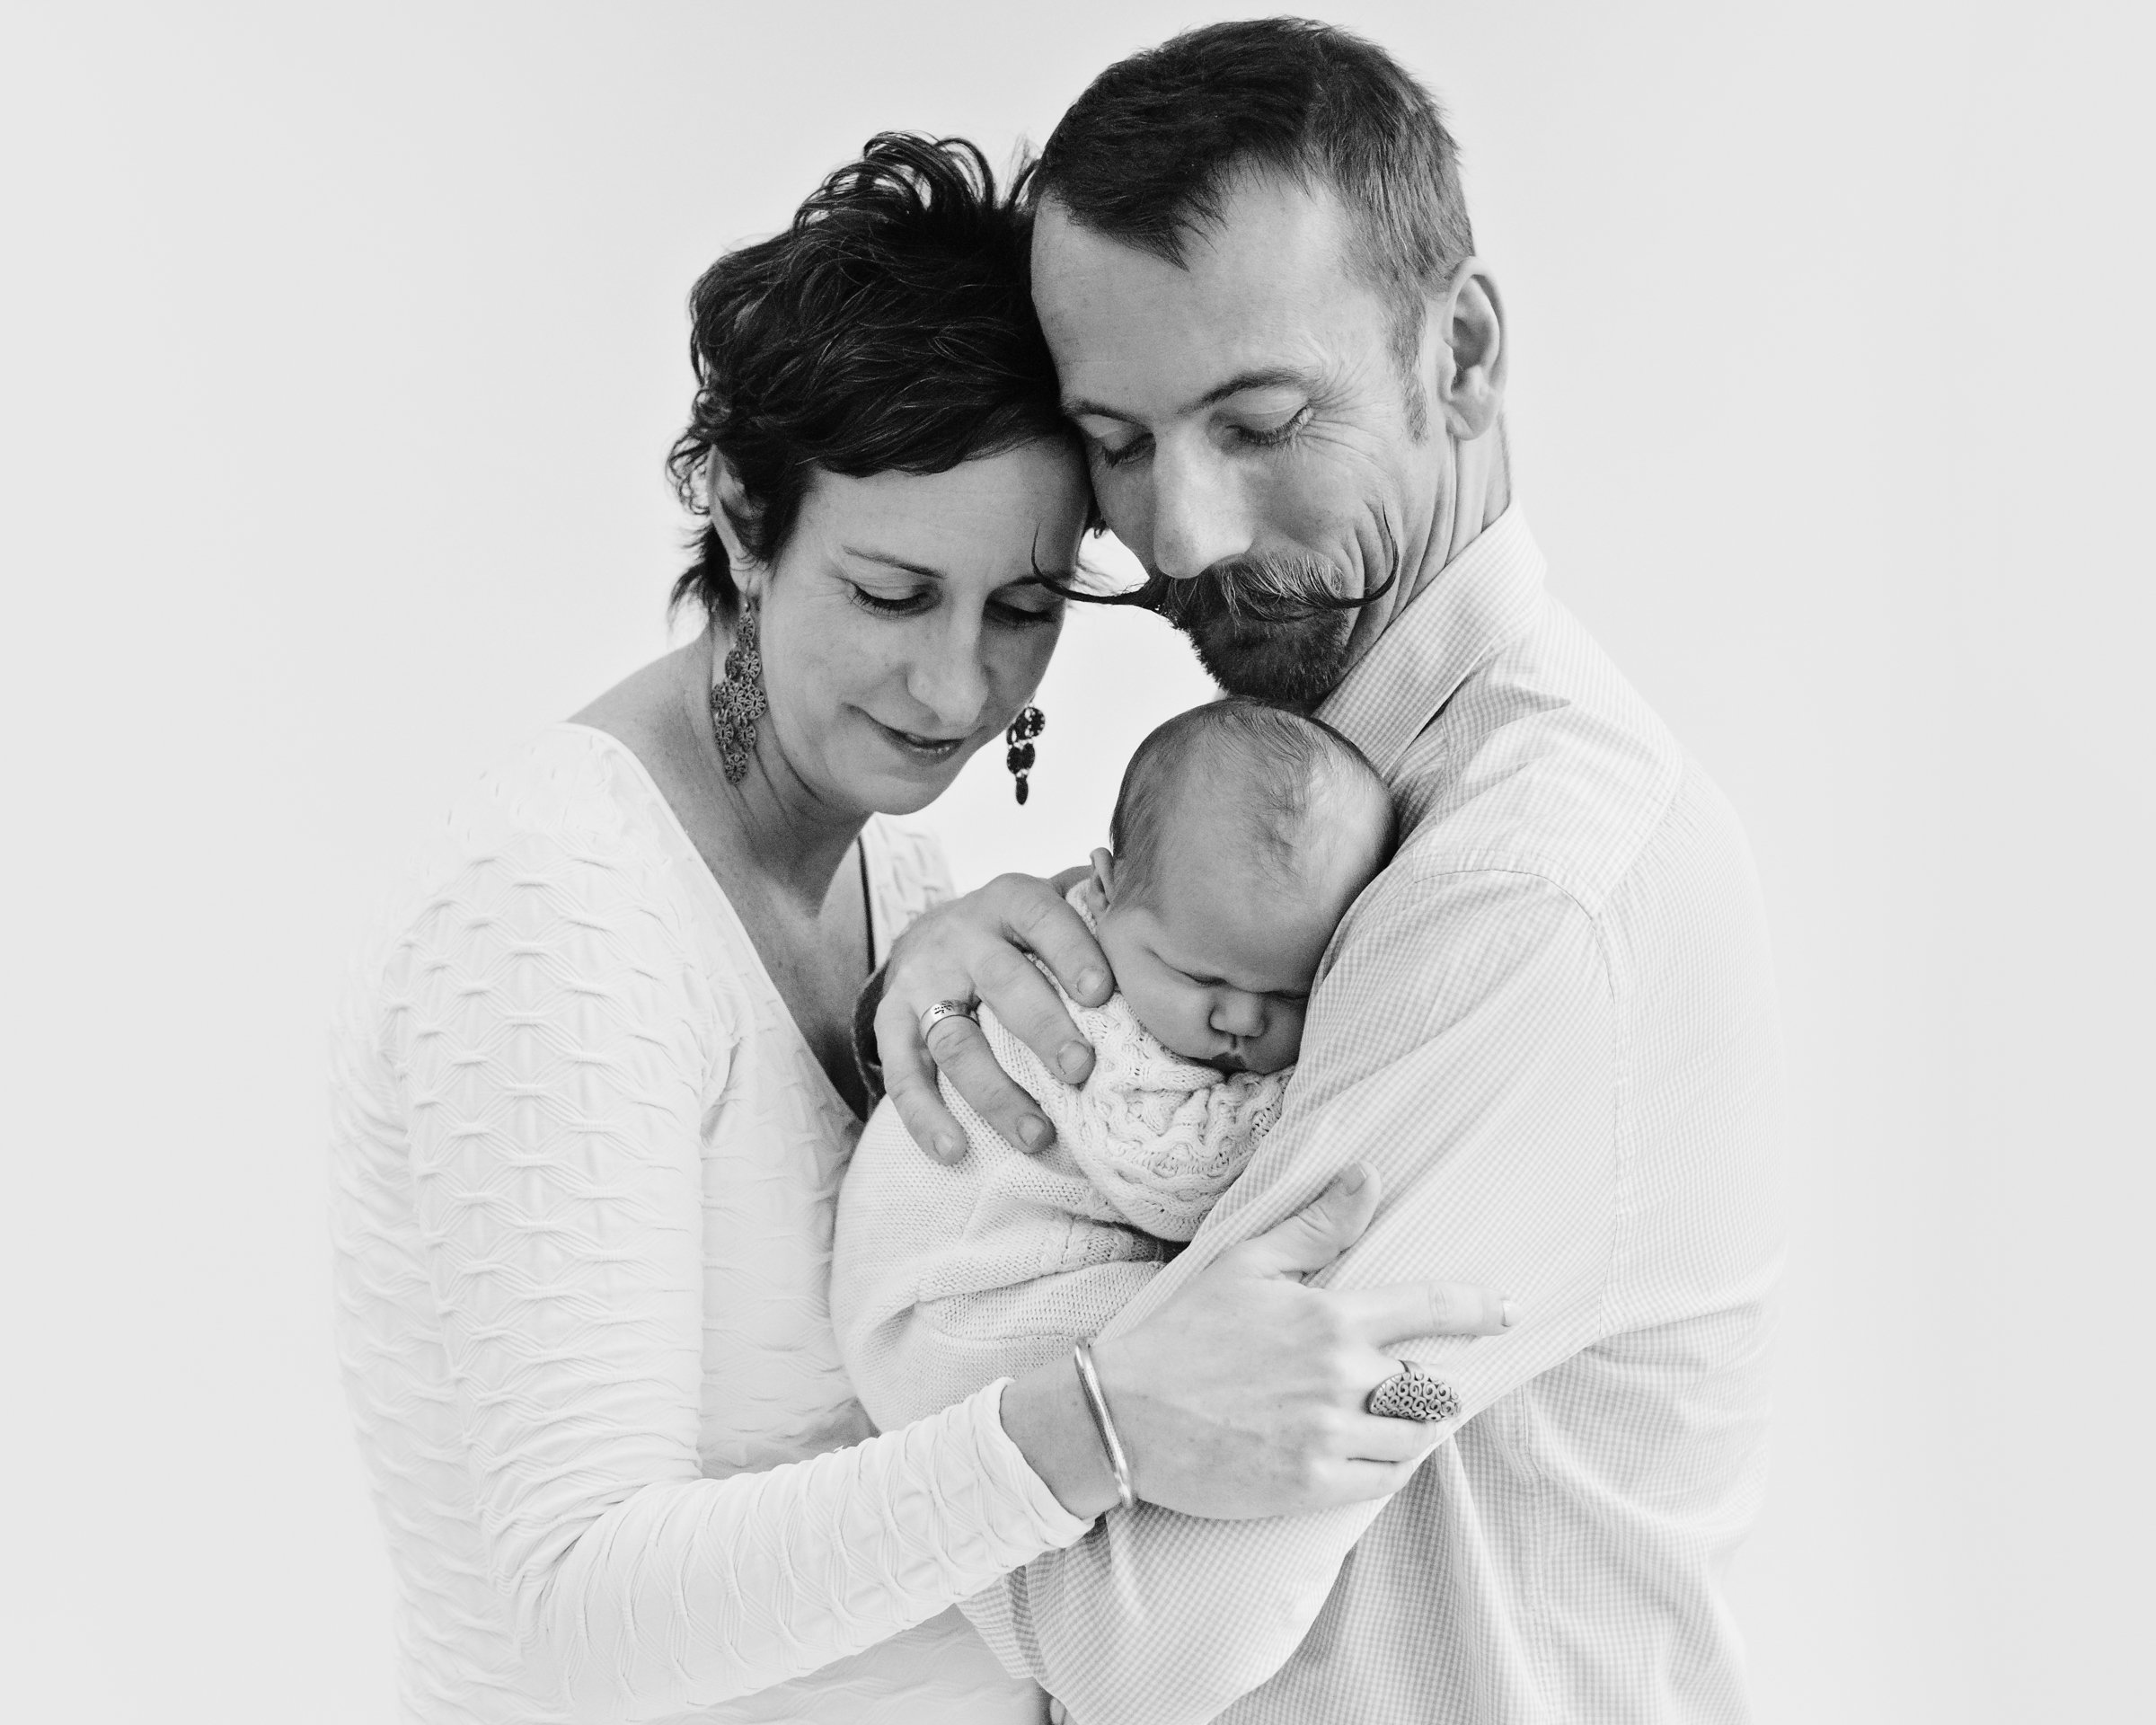 Lifestyle vs posed newborn photography - which is the best